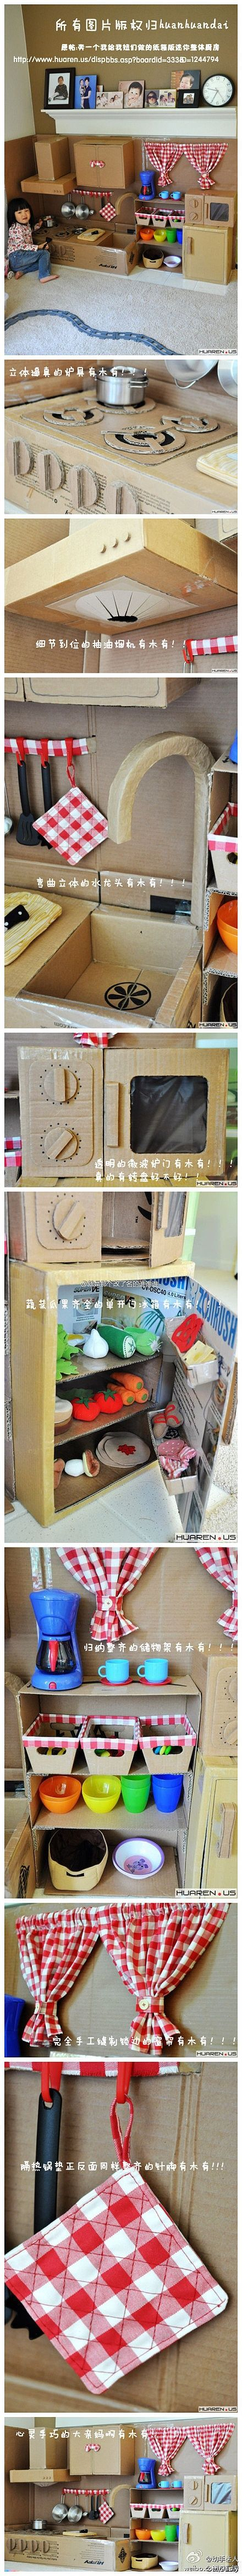 DIY cardboard kitchen ideas (just a photo, no link sorry, pinterest wouldn't allow me to repin as link was report as spam - so saved photo and uploaded it)